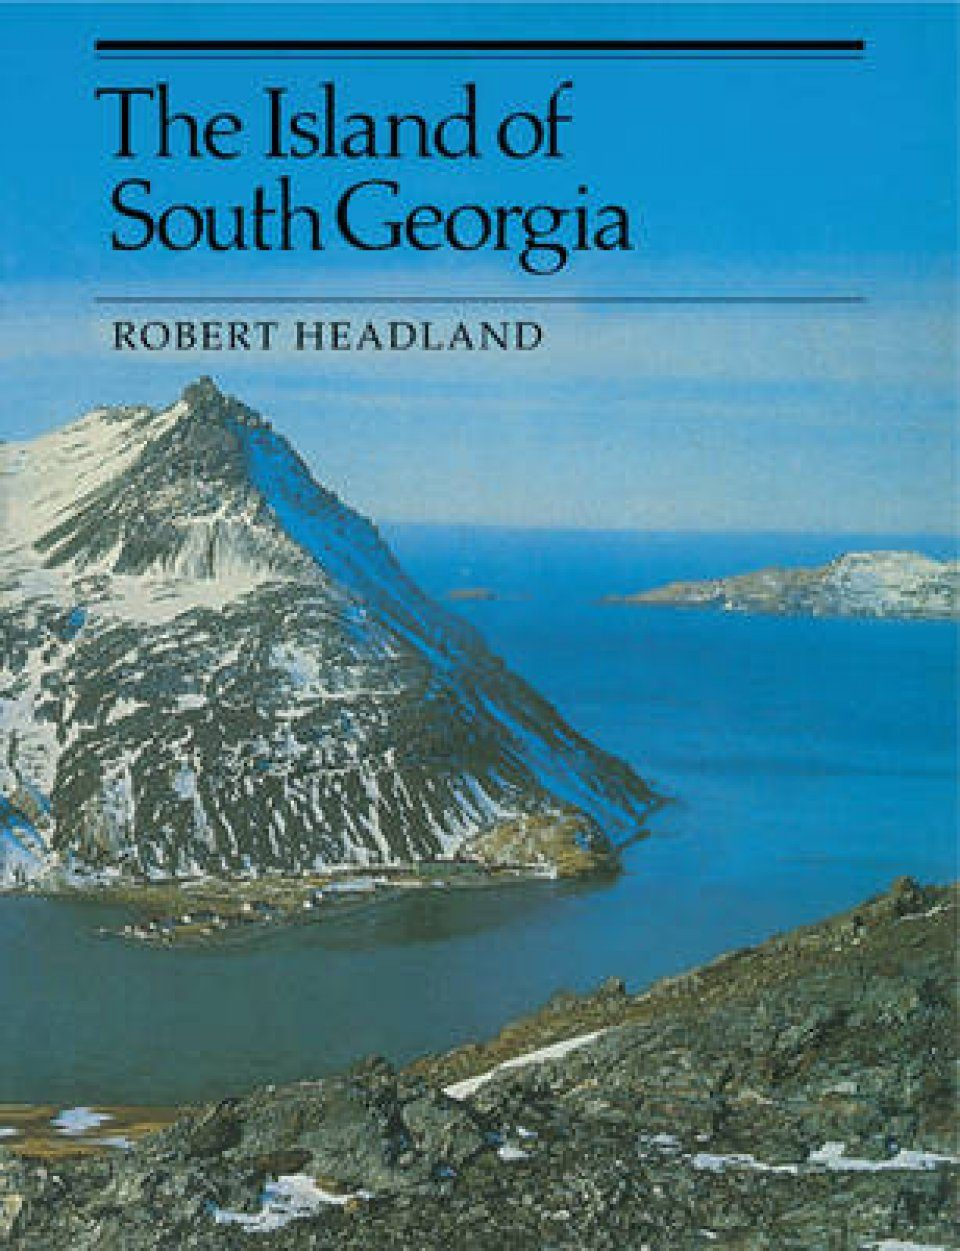 The Island of South Georgia